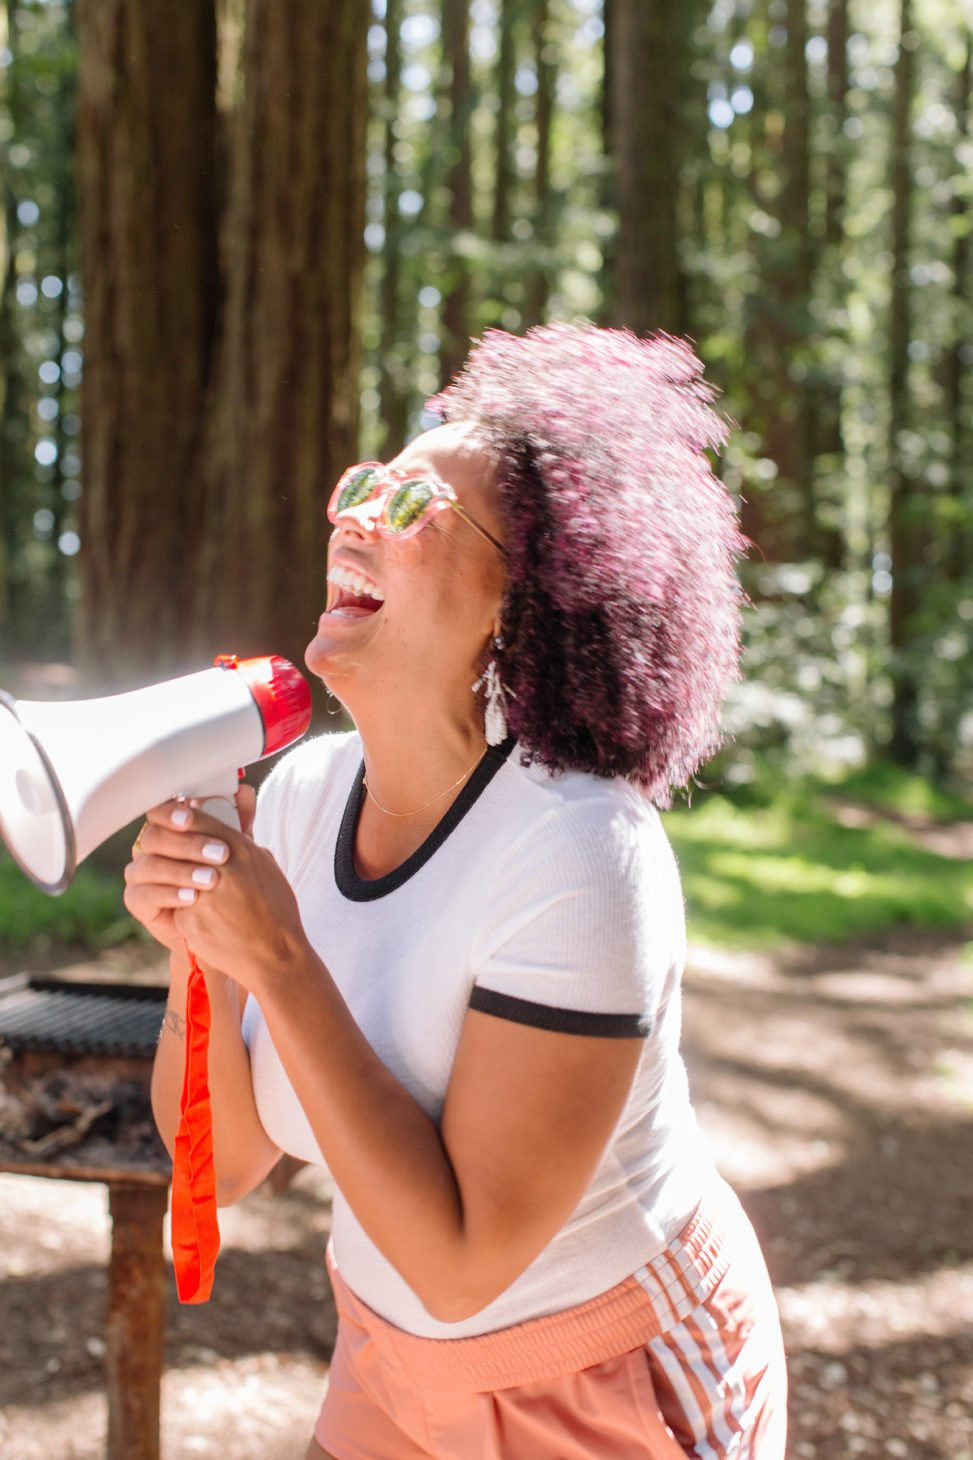 woman in the woods near a grill holding a megaphone and laughing